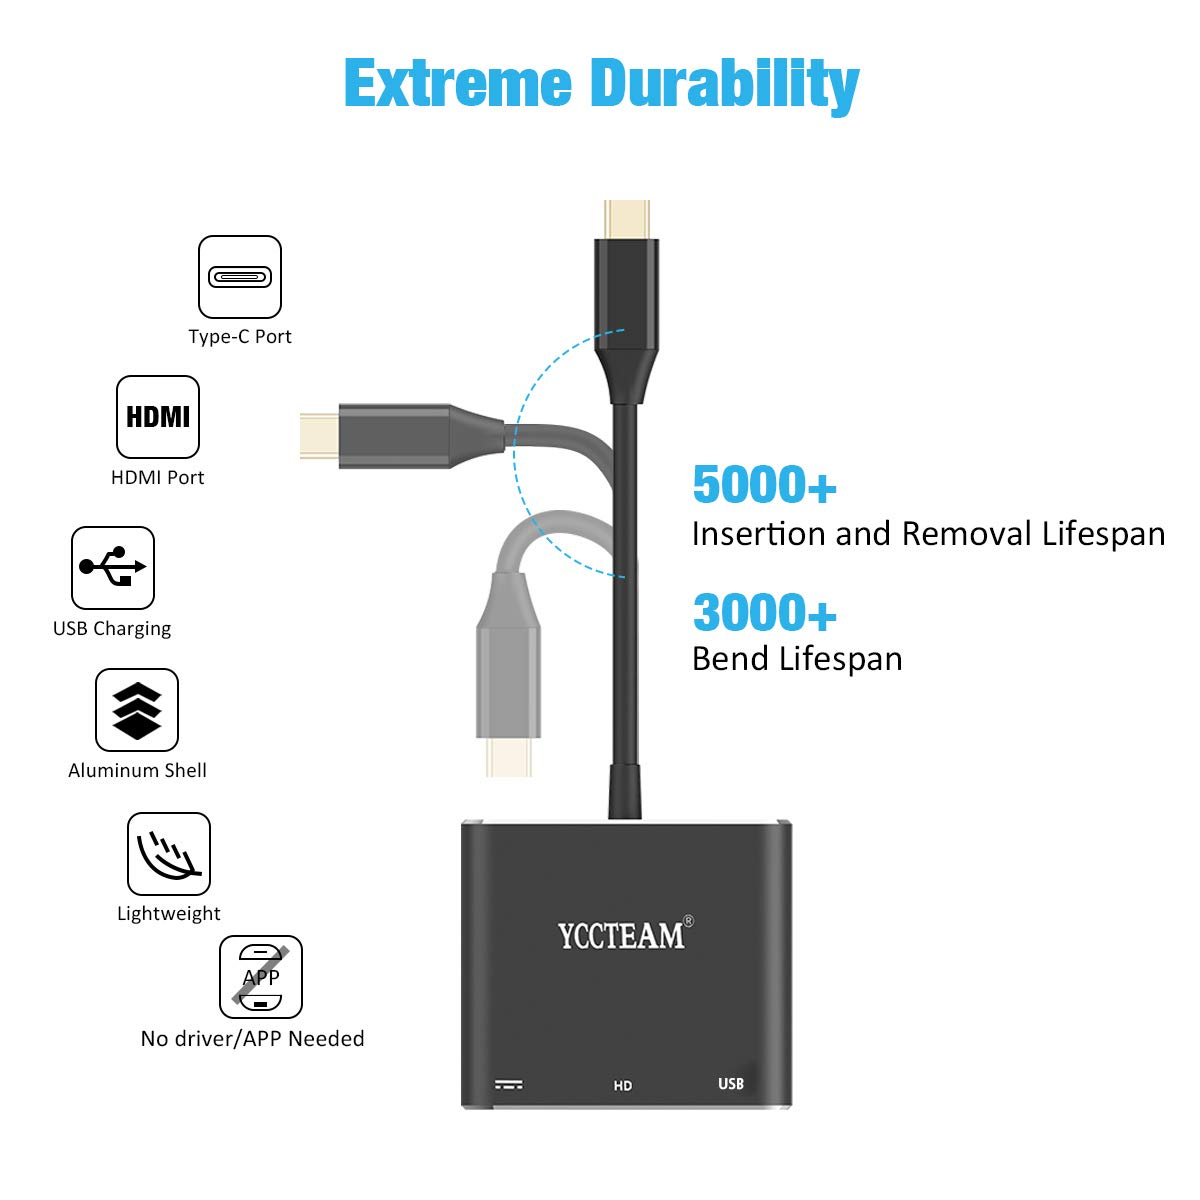 Y Team HDMI TV Adapter for Nintendo Switch, USB Type C to HDMI Adapter Multiport Hub, Portable 4K HDMI Switch Dock for Samsung S8/S9 MacBook Google Pixel Travel TV Docking Station